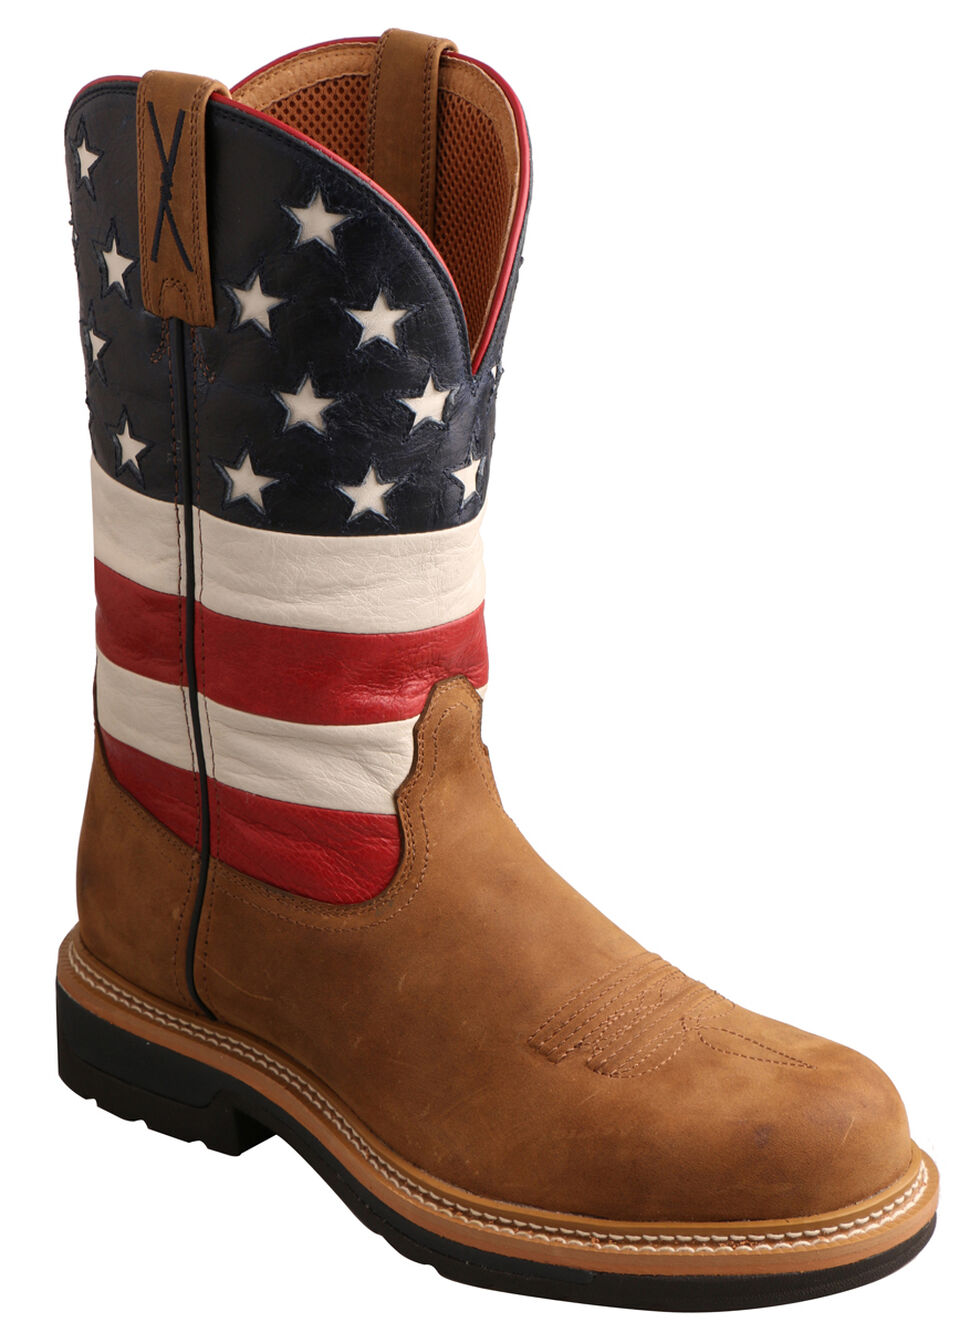 Twisted X VFW American Flag Lite Cowboy Work Boots - Steel Toe , Distressed, hi-res